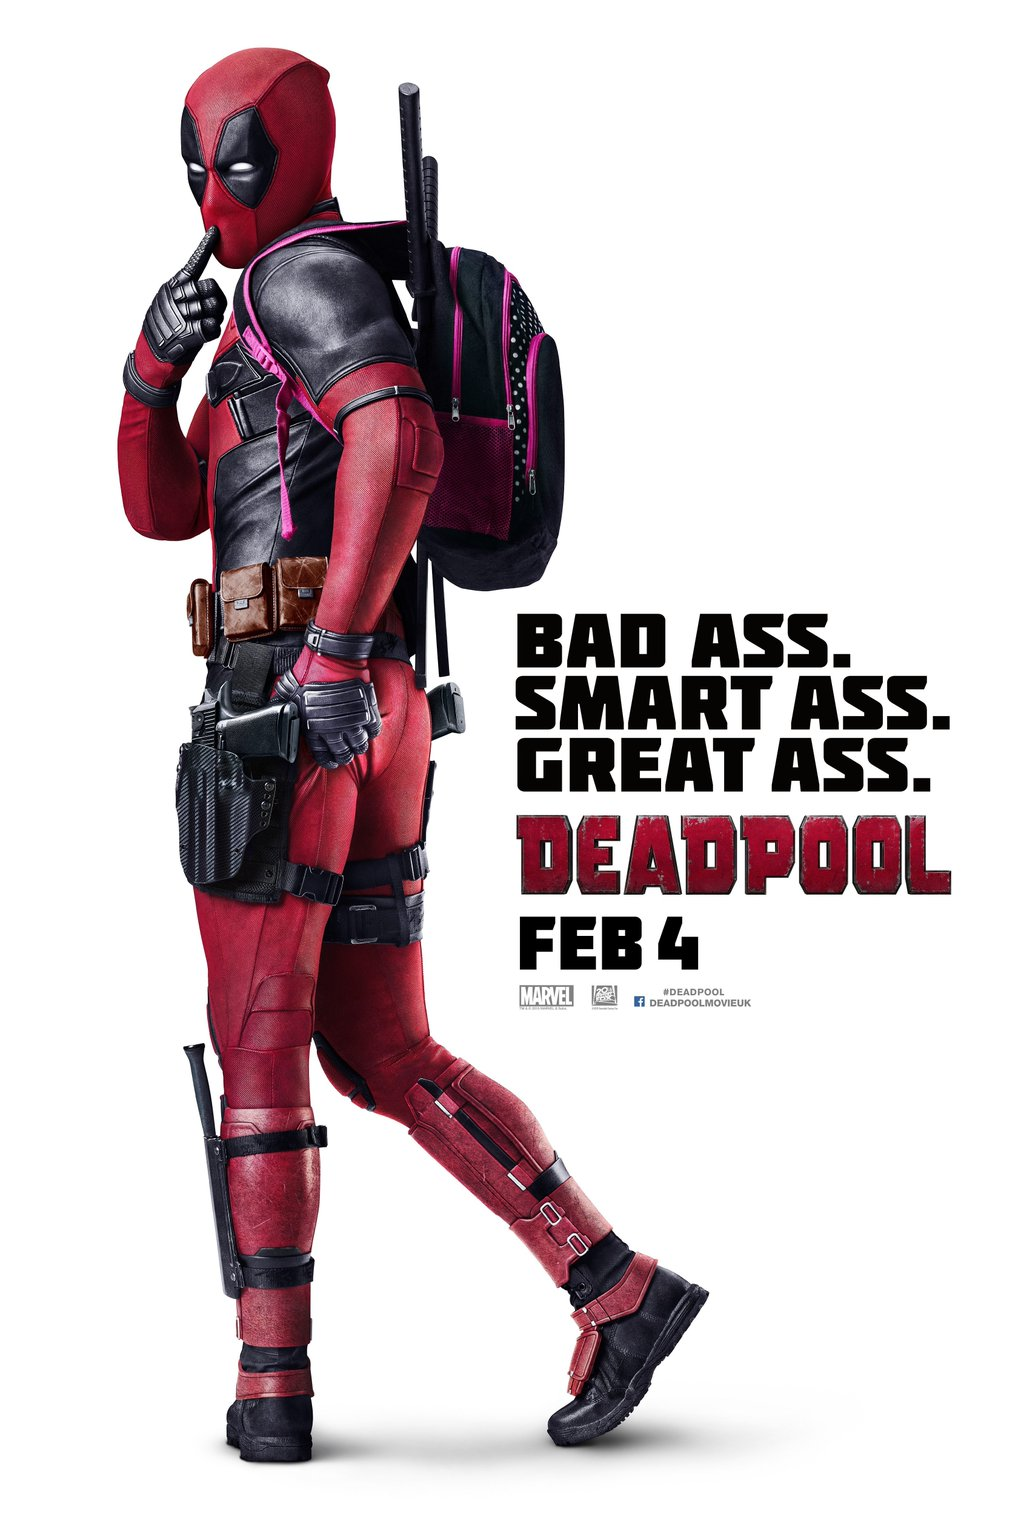 Ryan Reynold's Deadpool